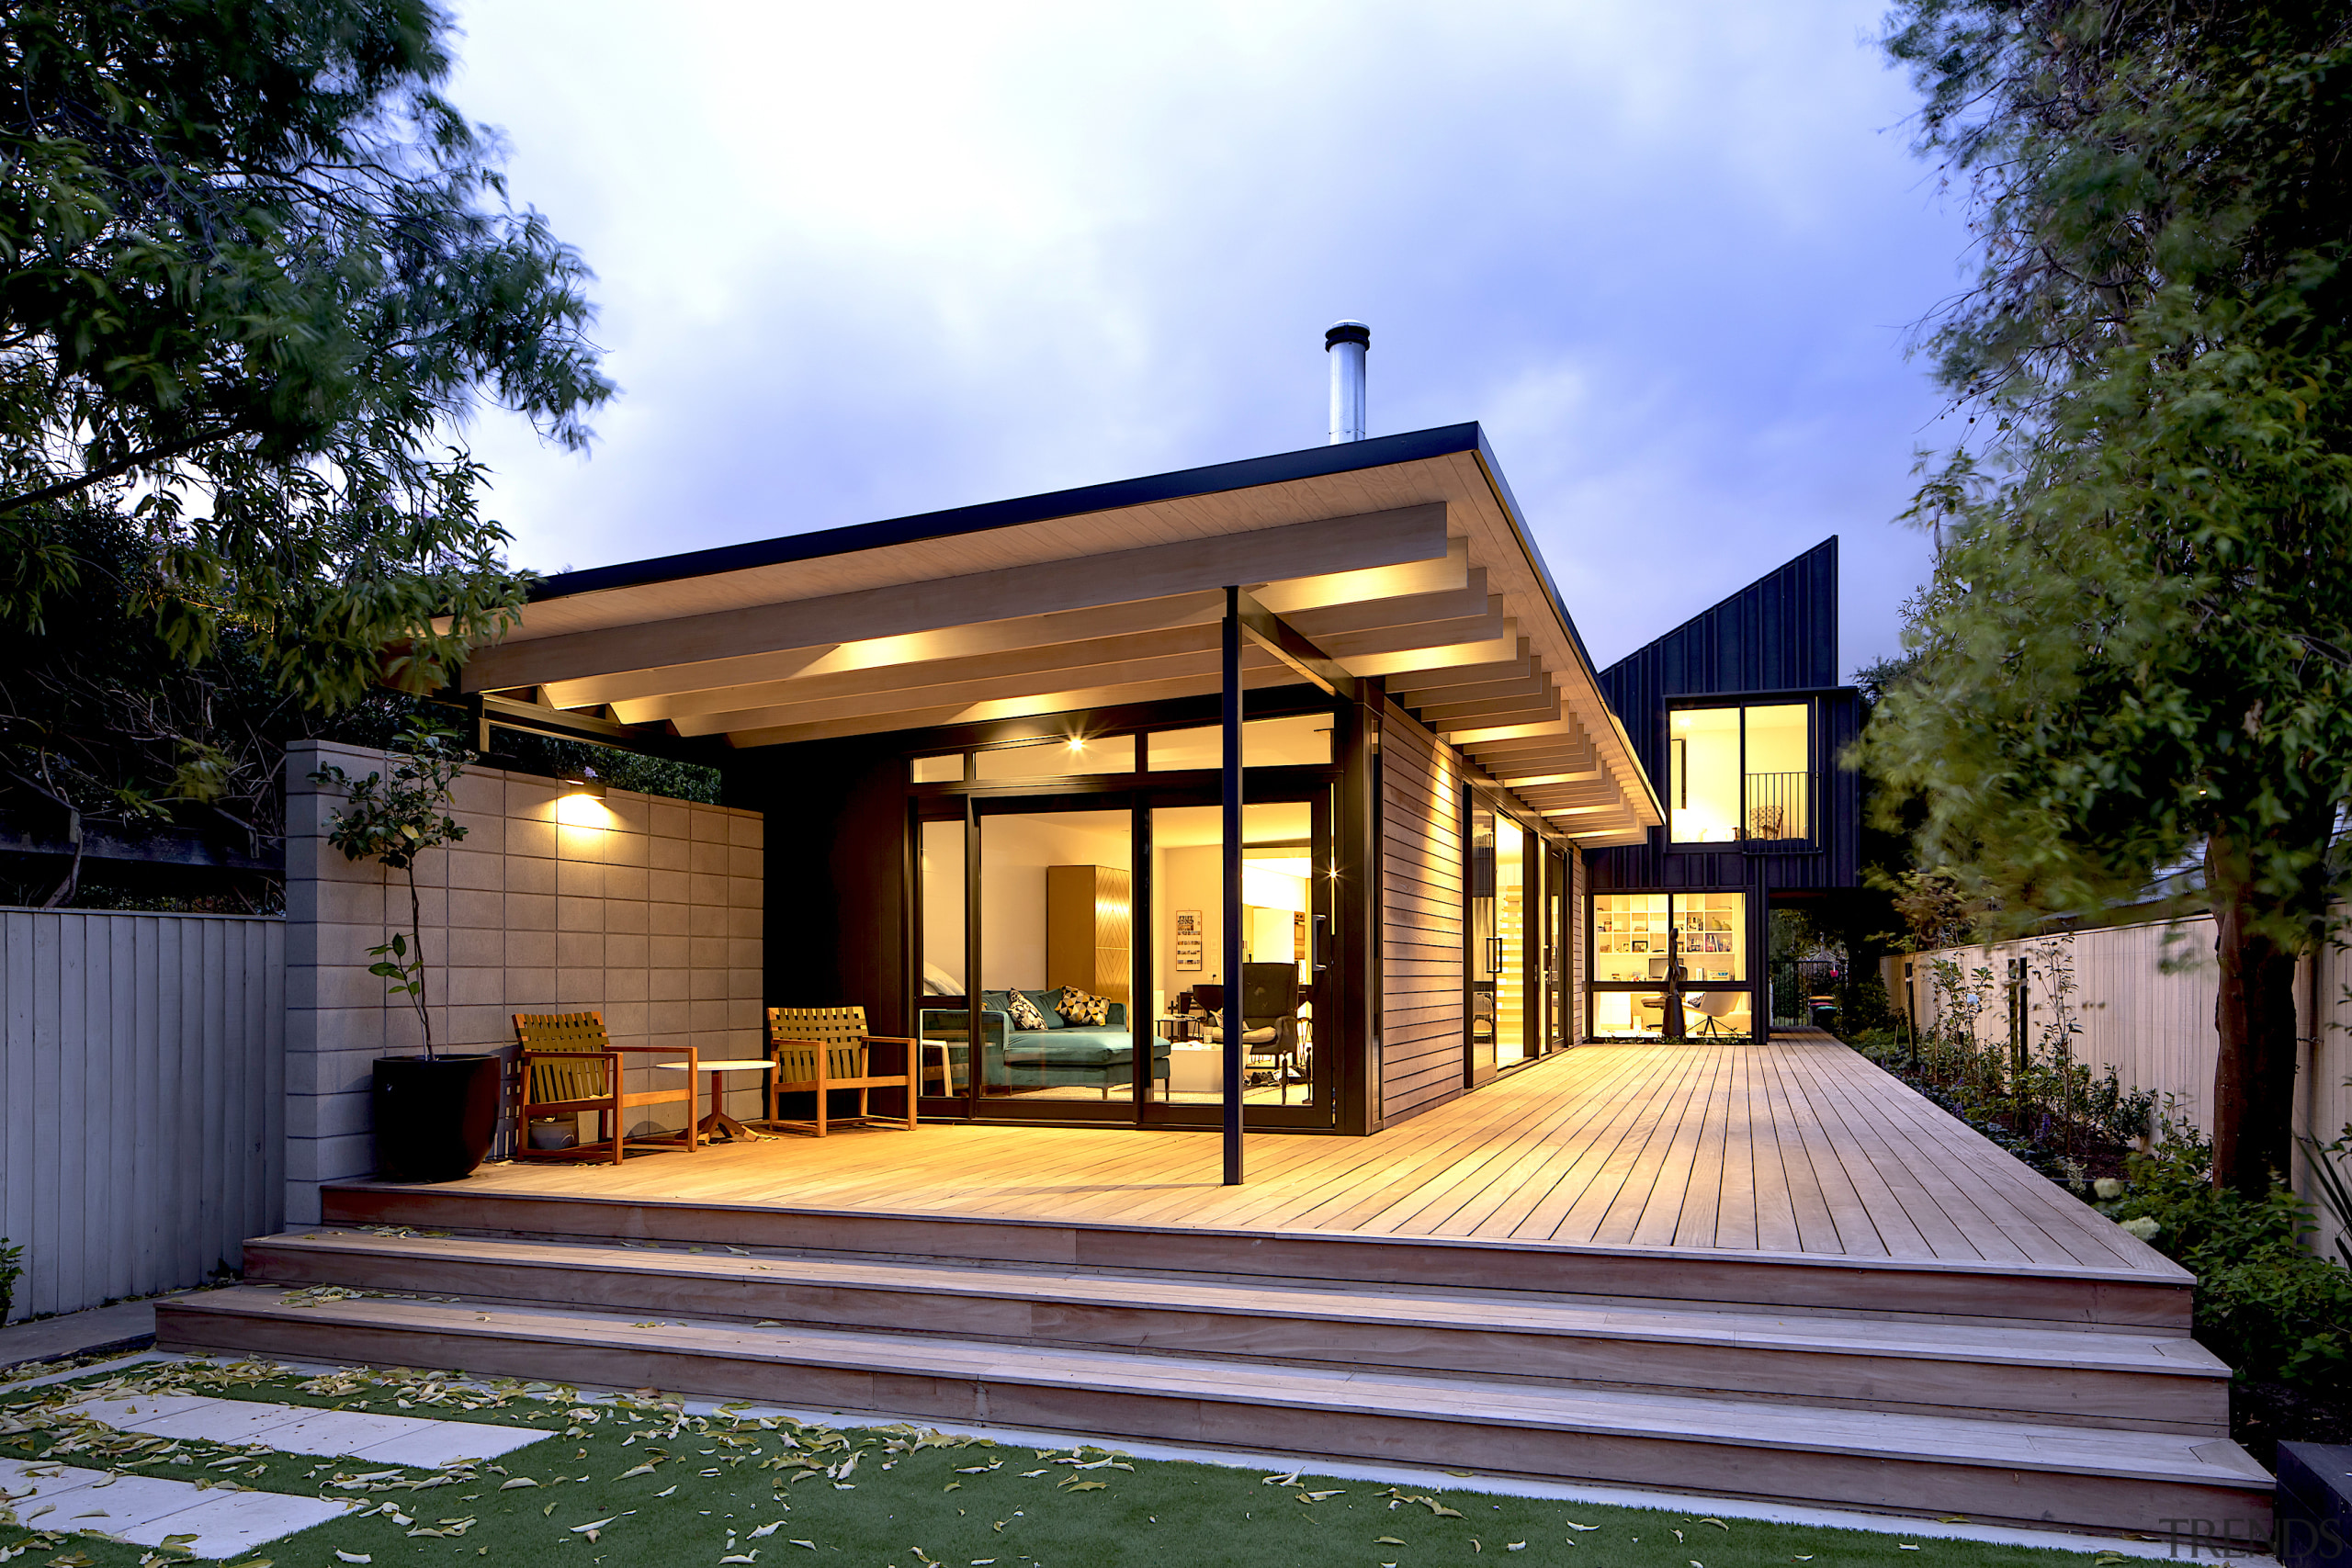 Three contrasting forms come together in this family